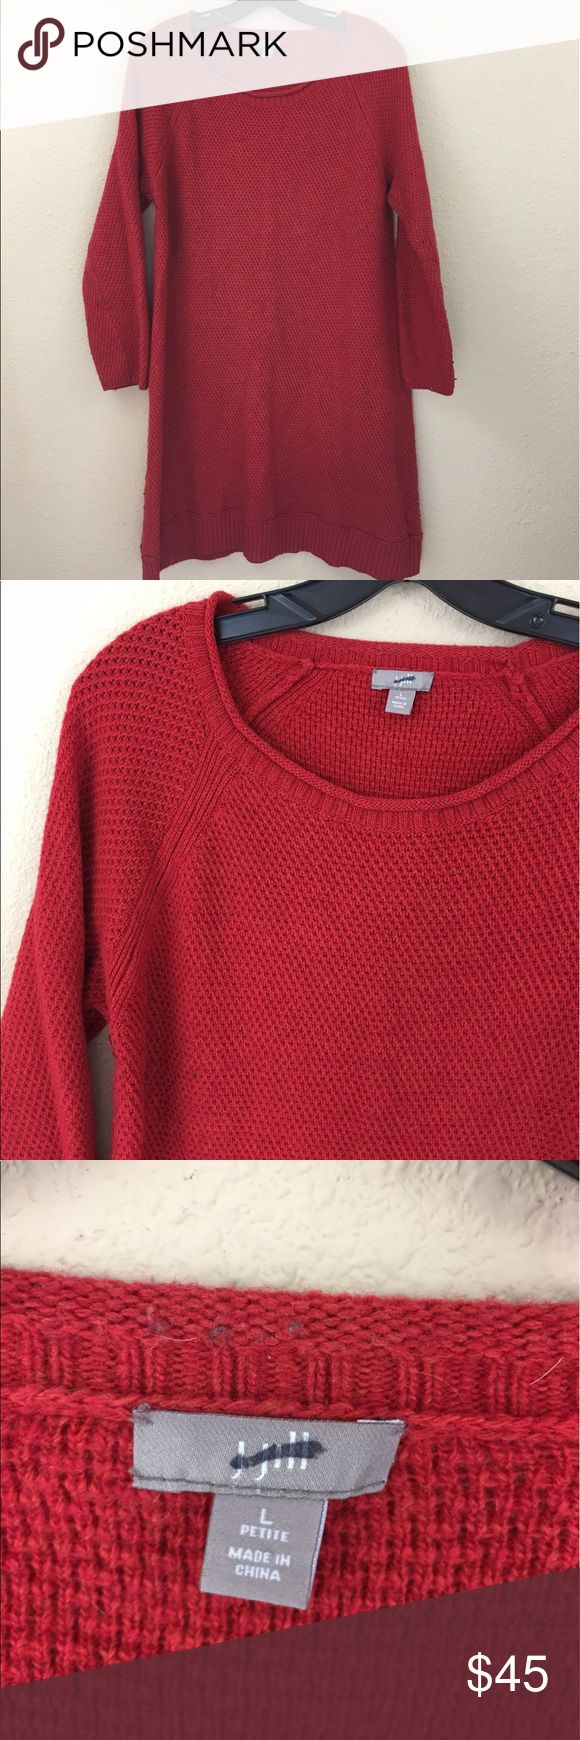 J. Jill red waffle knit wool blend sweater dress Great condition J. Jill Dresses